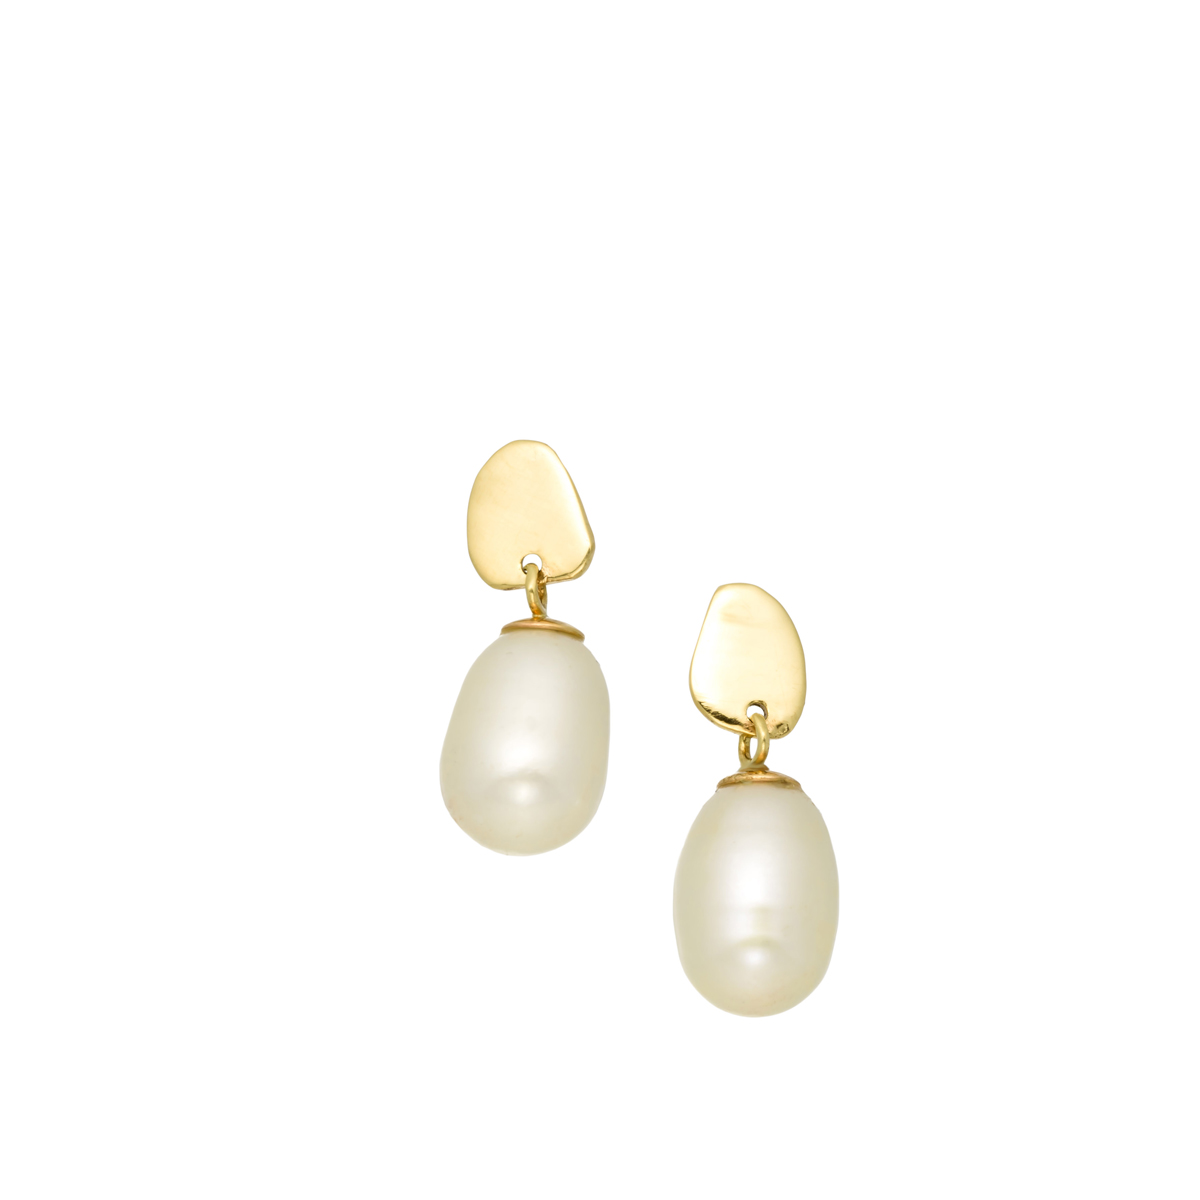 Gold dongle pearl earrings